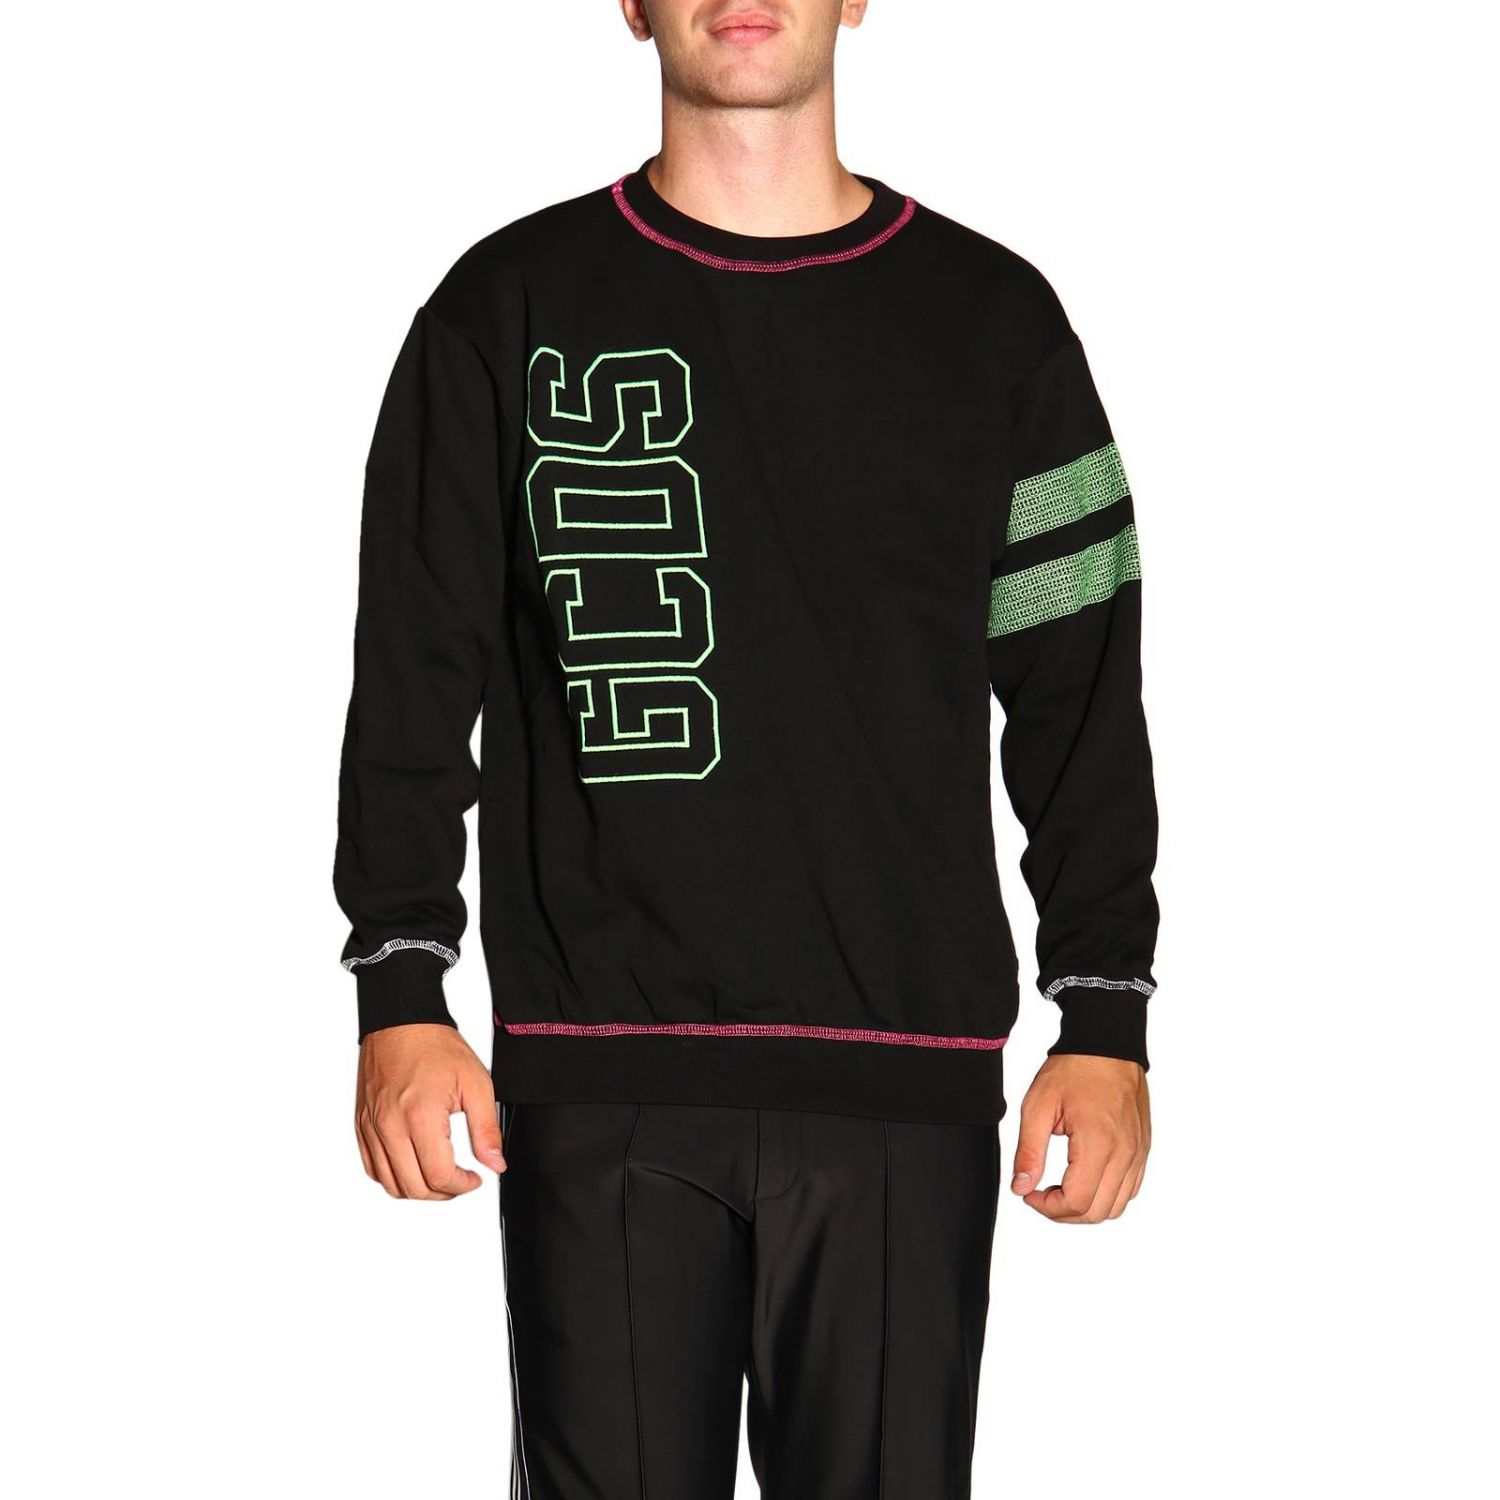 Sweater men Gcds black 1